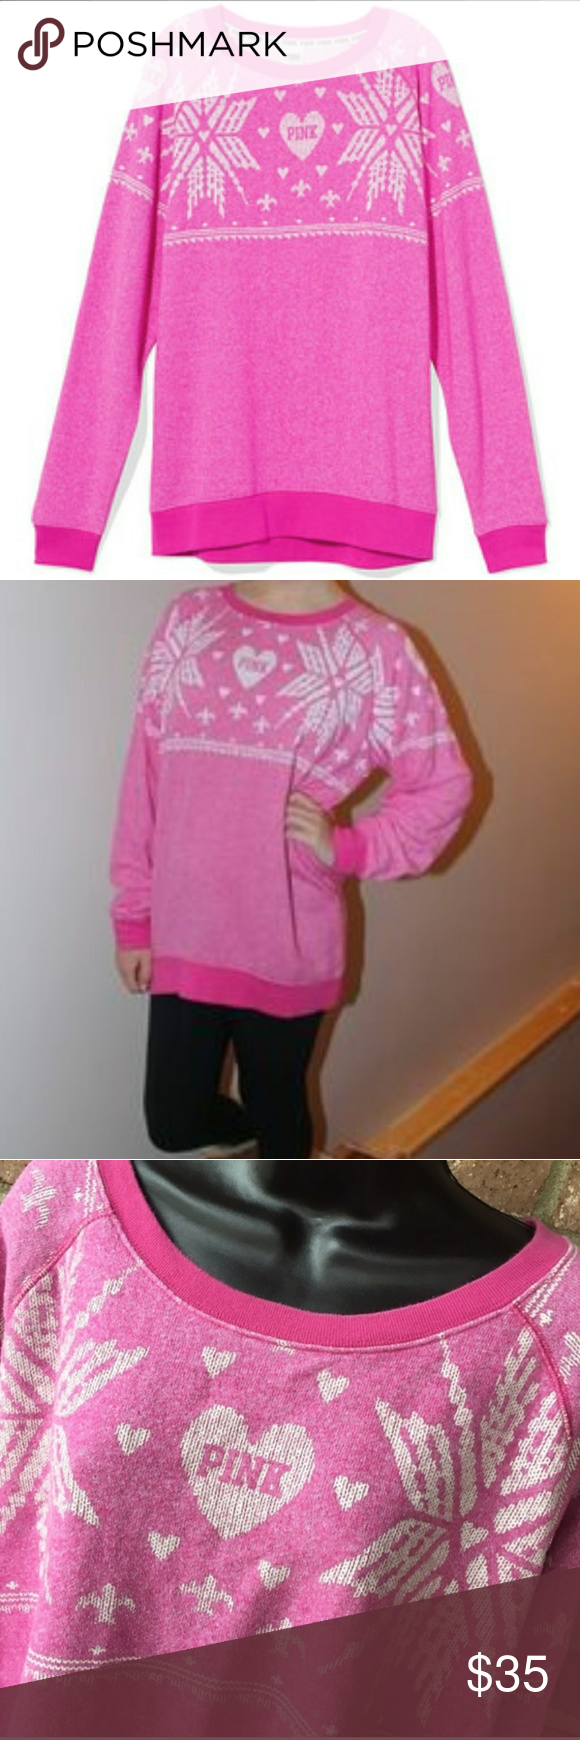 Victoria's Secret pink Christmas sweater VS Pink 'Ugly Sweater ...